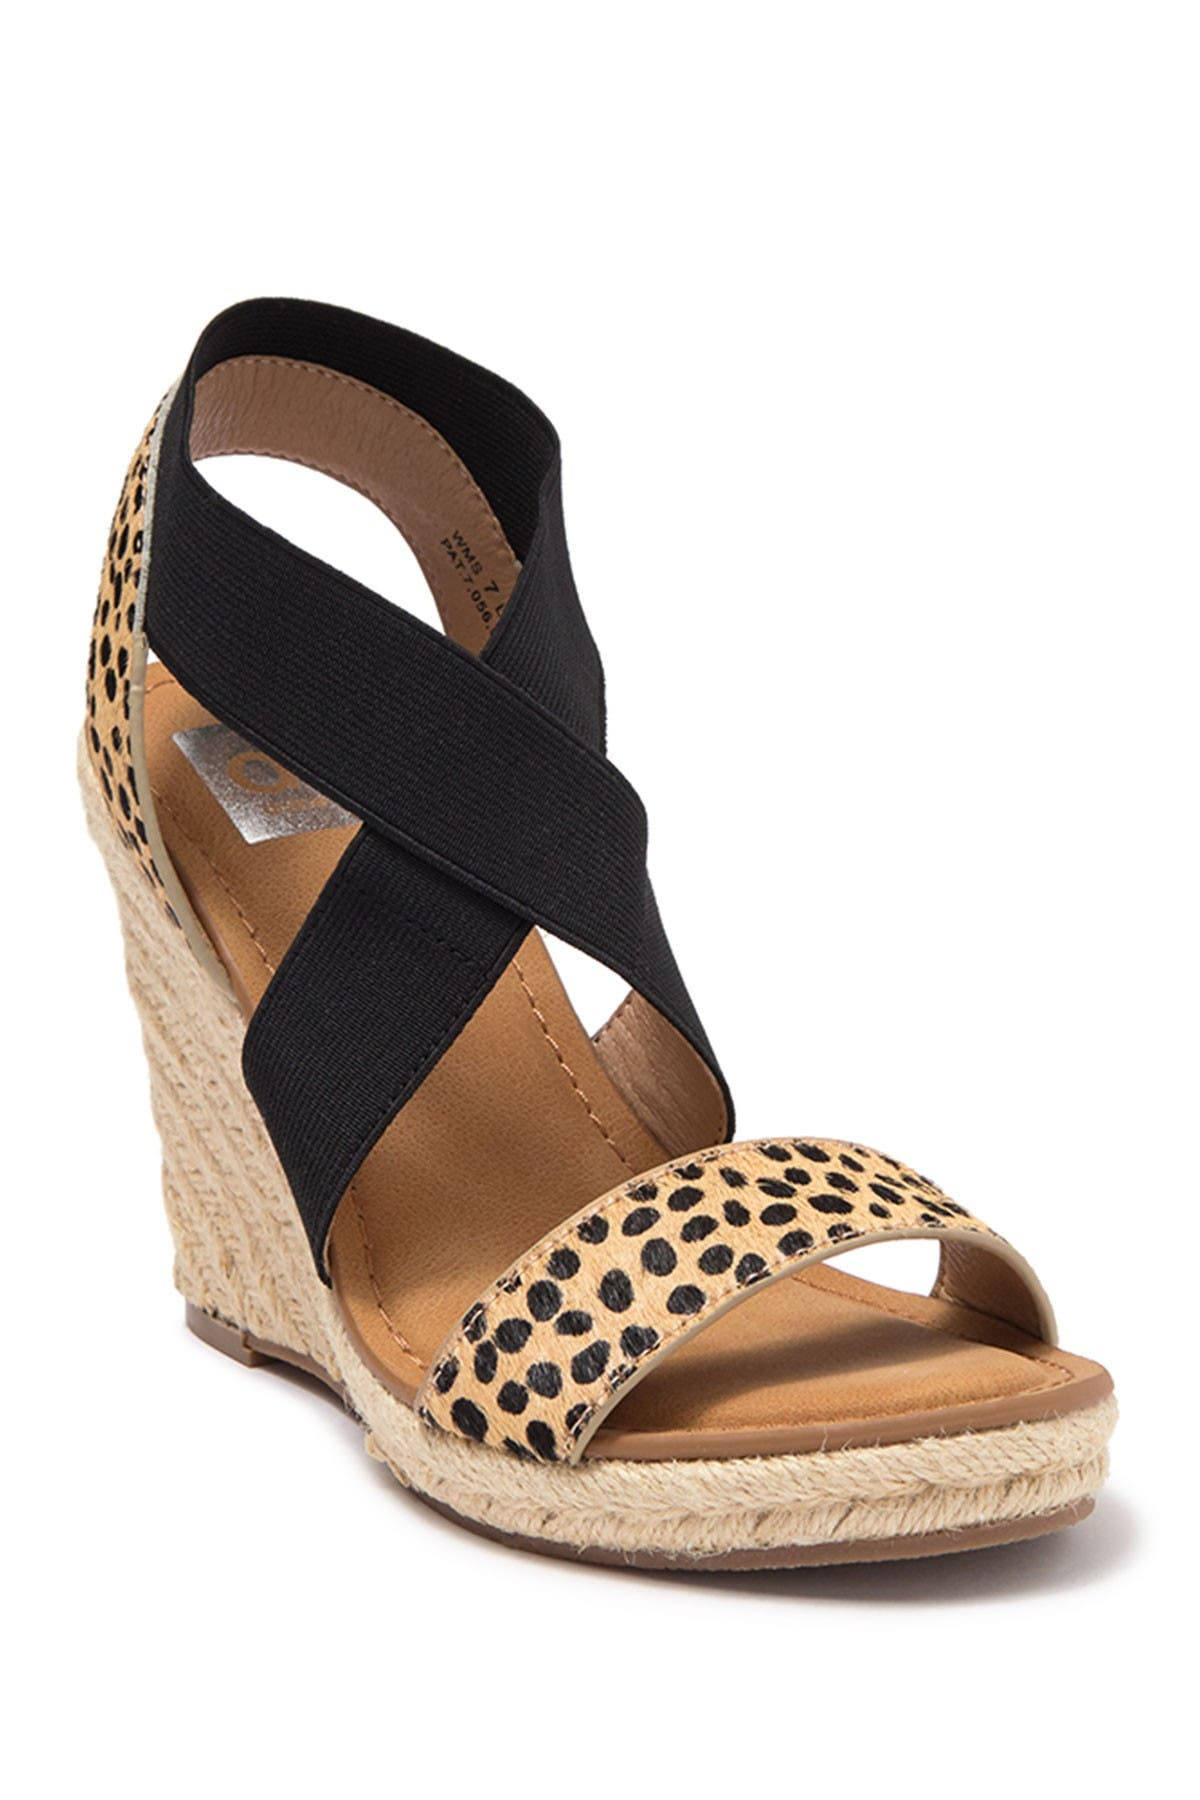 Image of DV DOLCE VITA Lyssa Espadrille Genuine Calf Hair Wedge Sandal